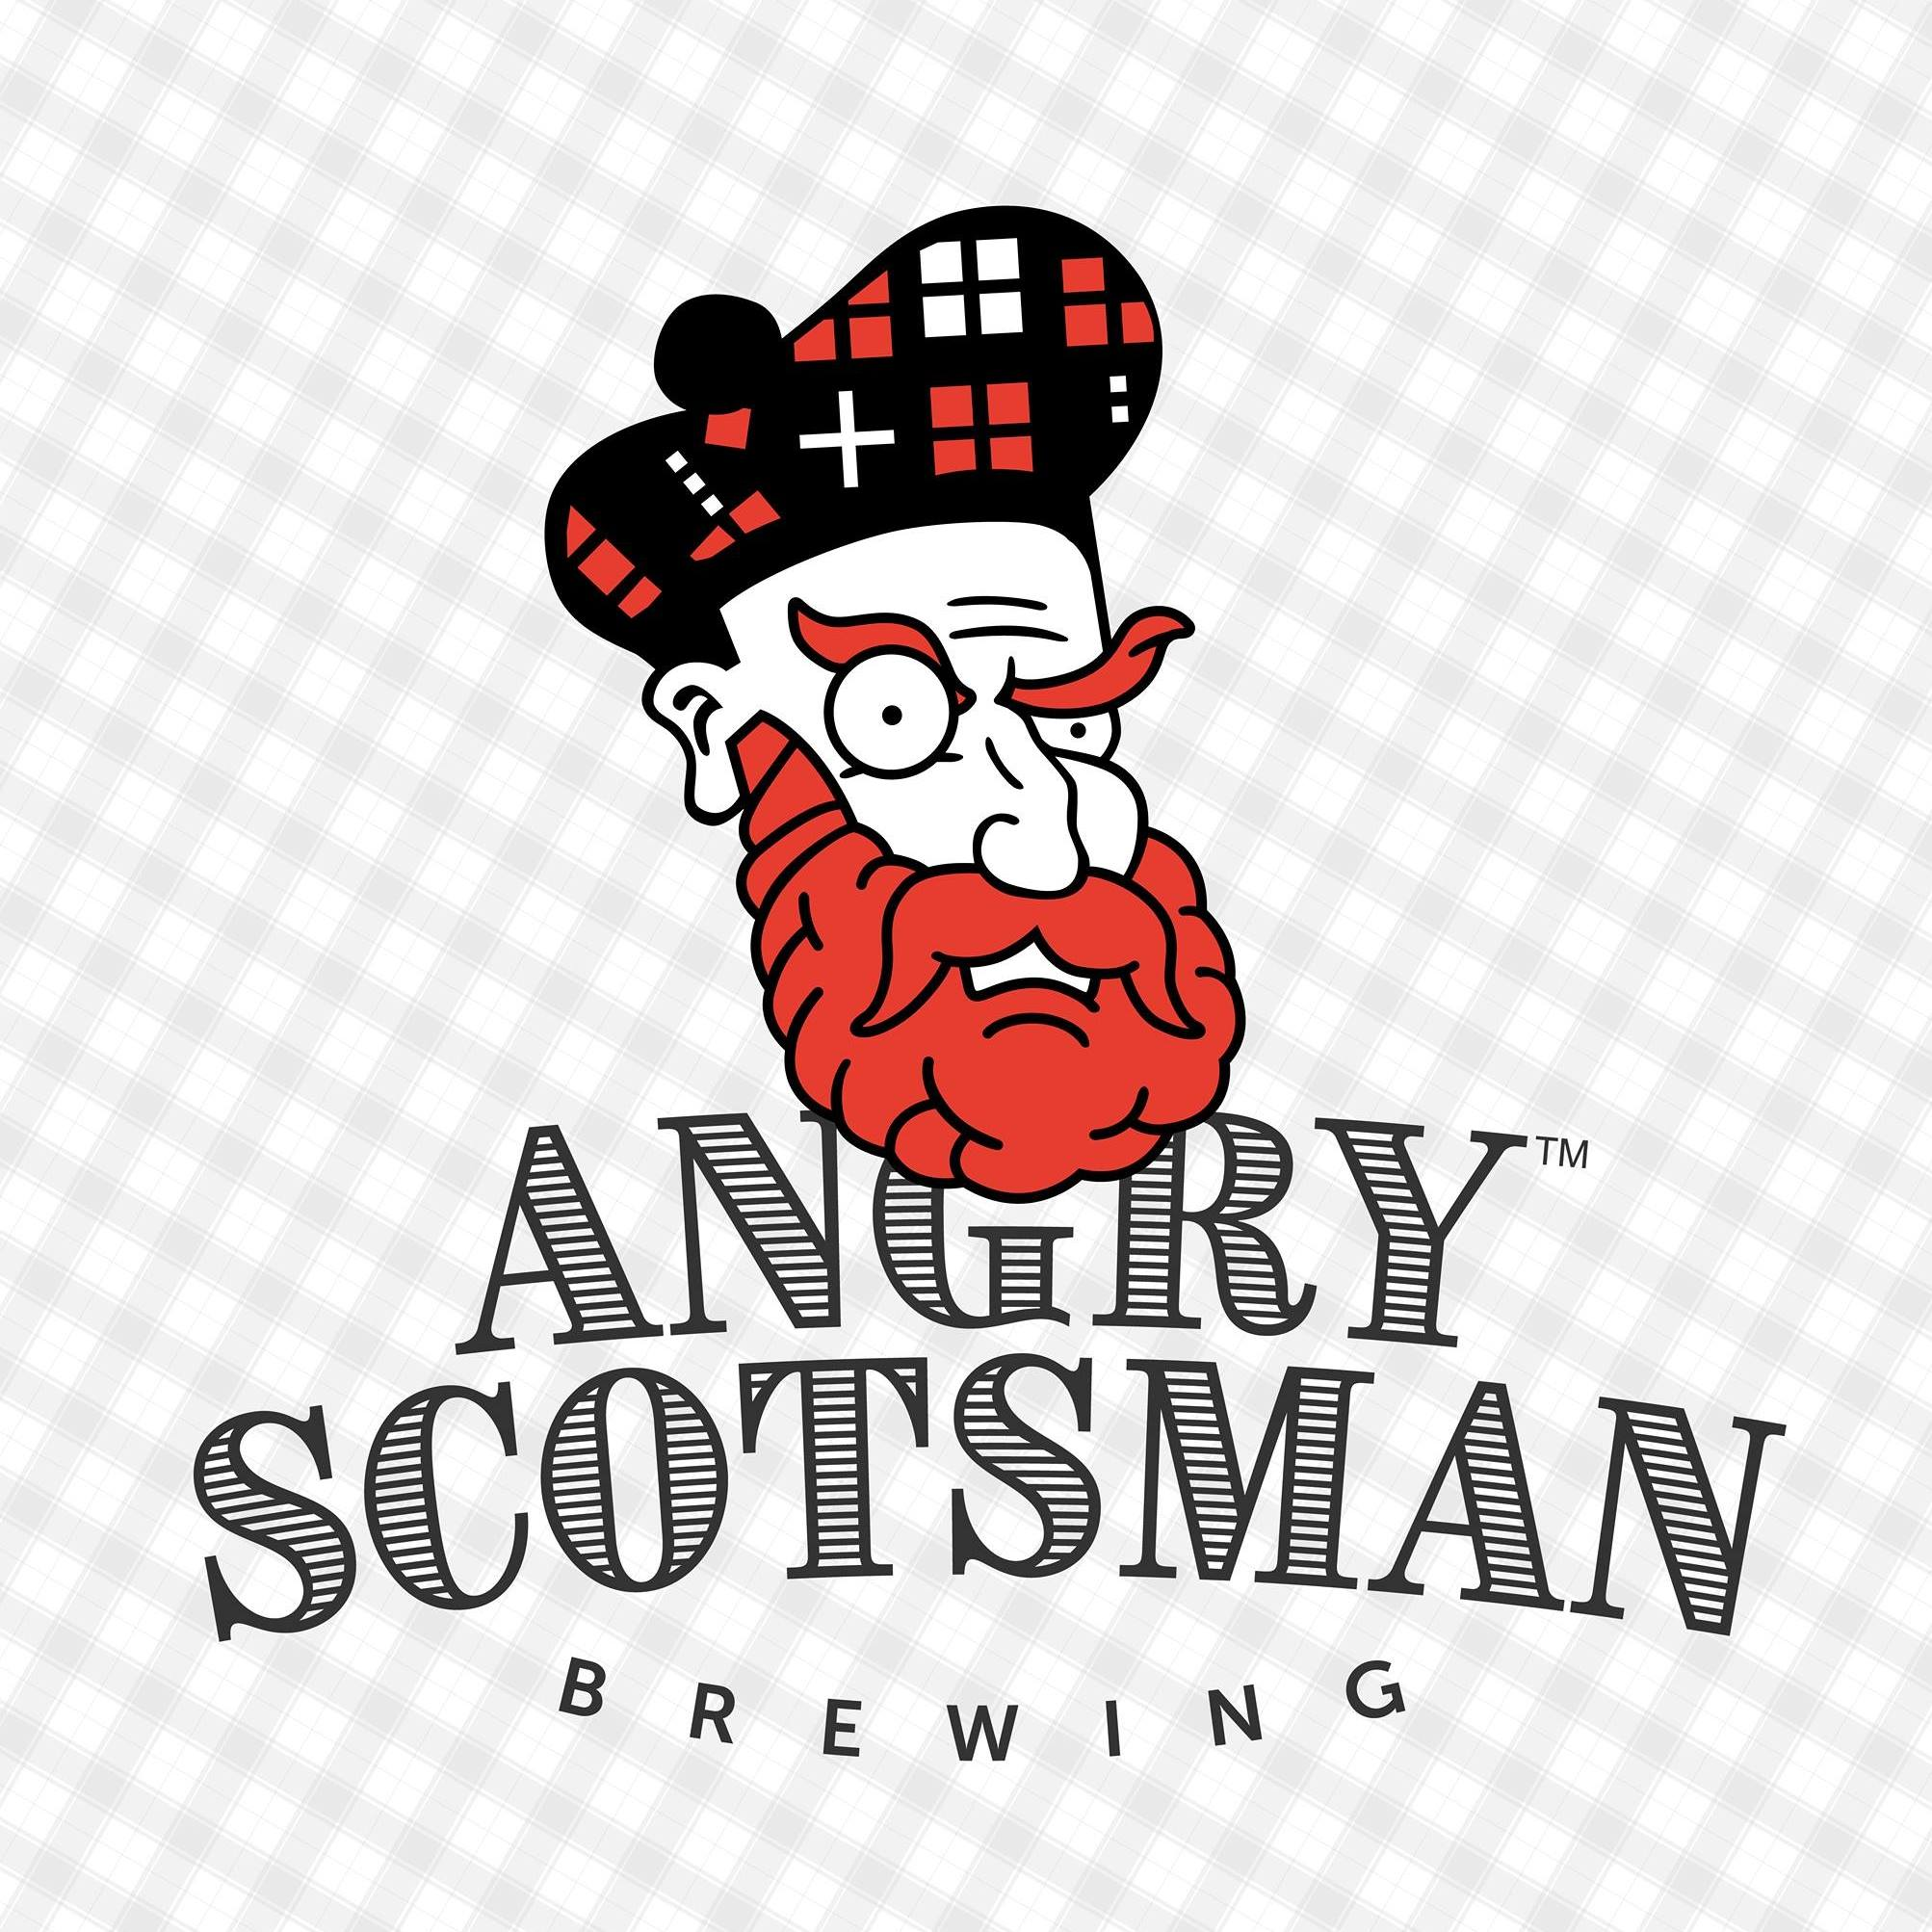 Angry Scotsman - 704 W. RenoOKC, OK 73102Taproom Hours:Sun 12-6 pmMon CLOSEDTues CLOSEDWed CLOSEDThur 4-10 pmFri 4-10 pmSat 12-10 pm